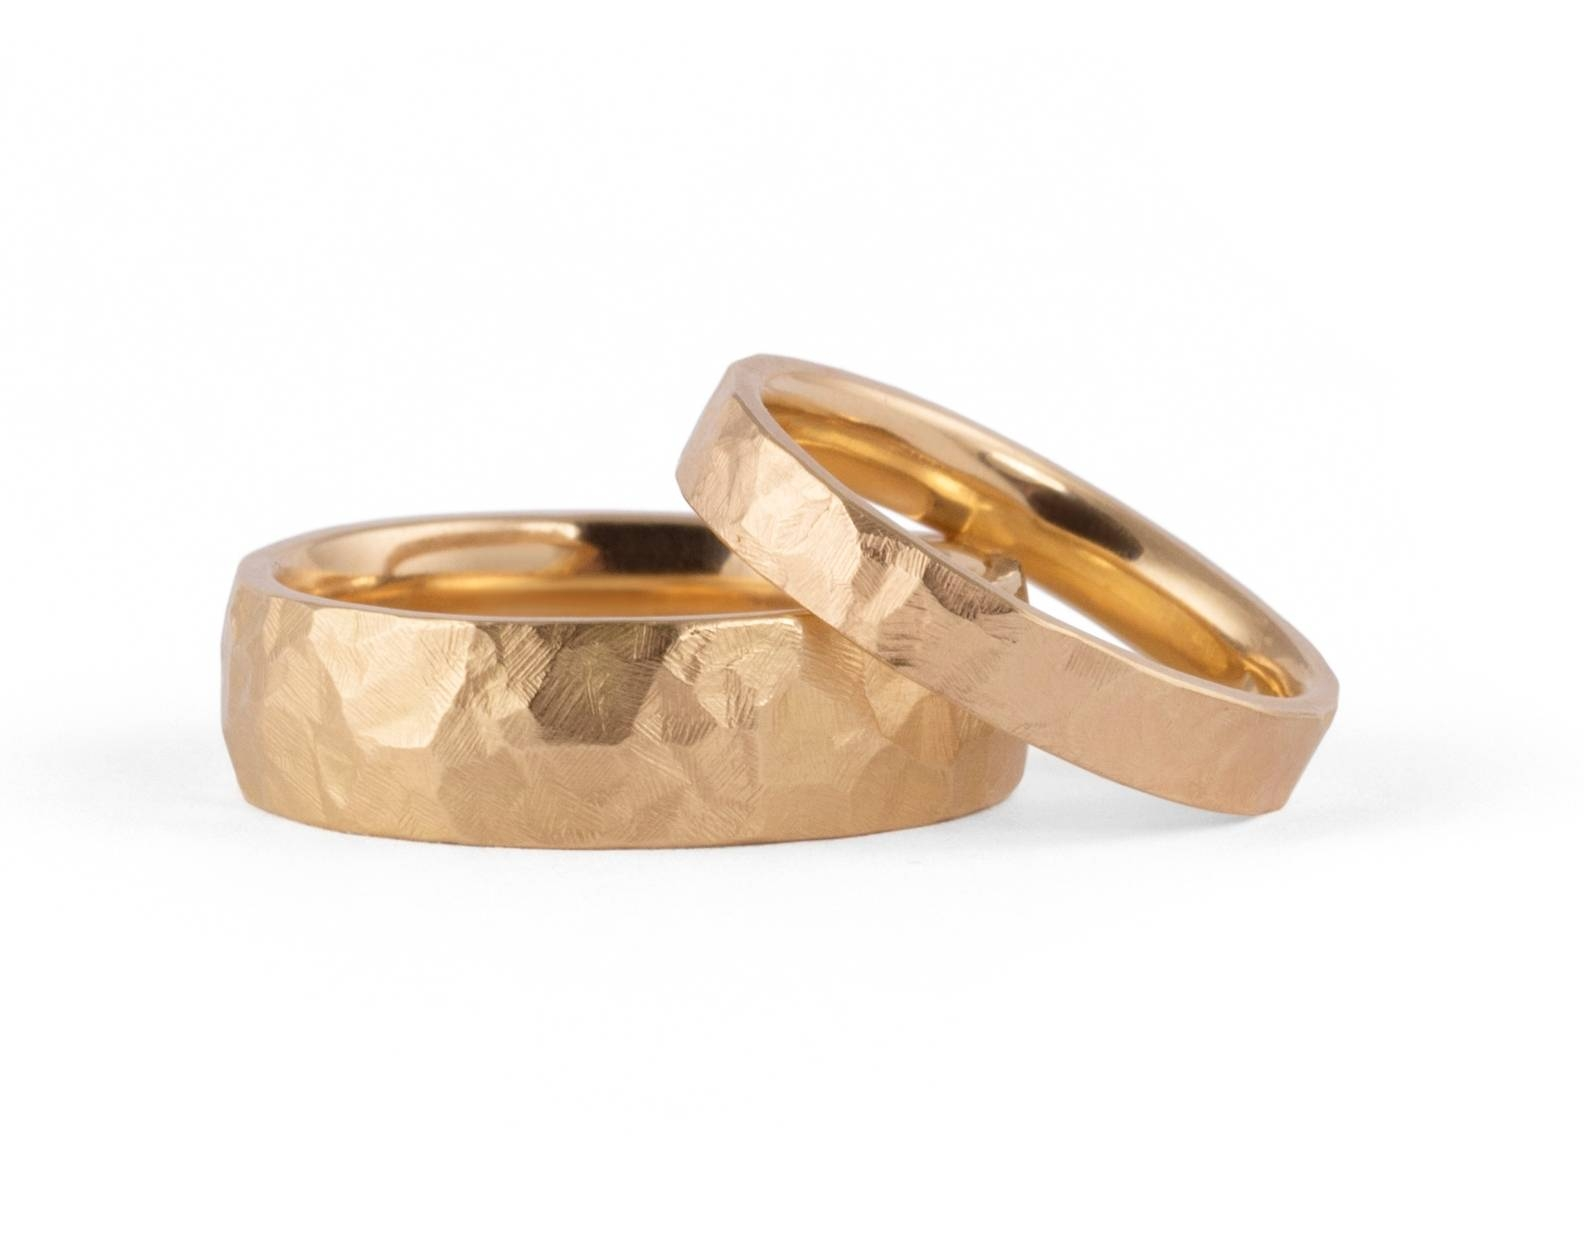 Hammered Wedding Bands – Mccaul Goldsmiths Intended For Hammered Rose Gold Wedding Bands (View 10 of 15)